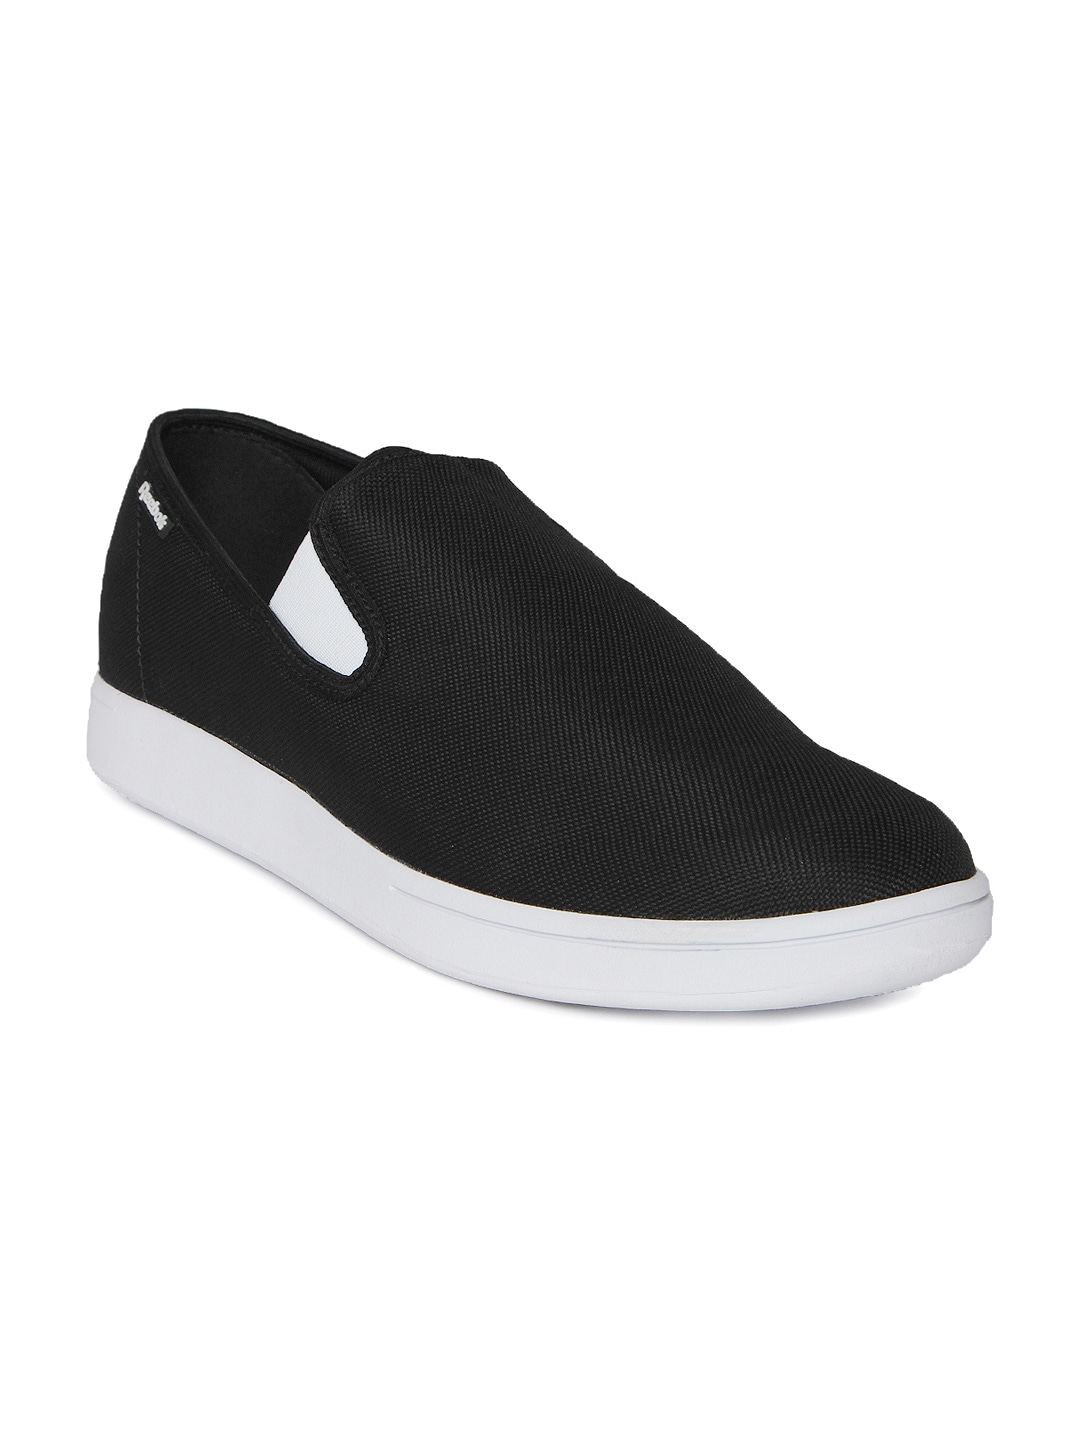 69ba4d8659c149 Reebok Casual Shoes - Buy Reebok Casual Shoes Online in India